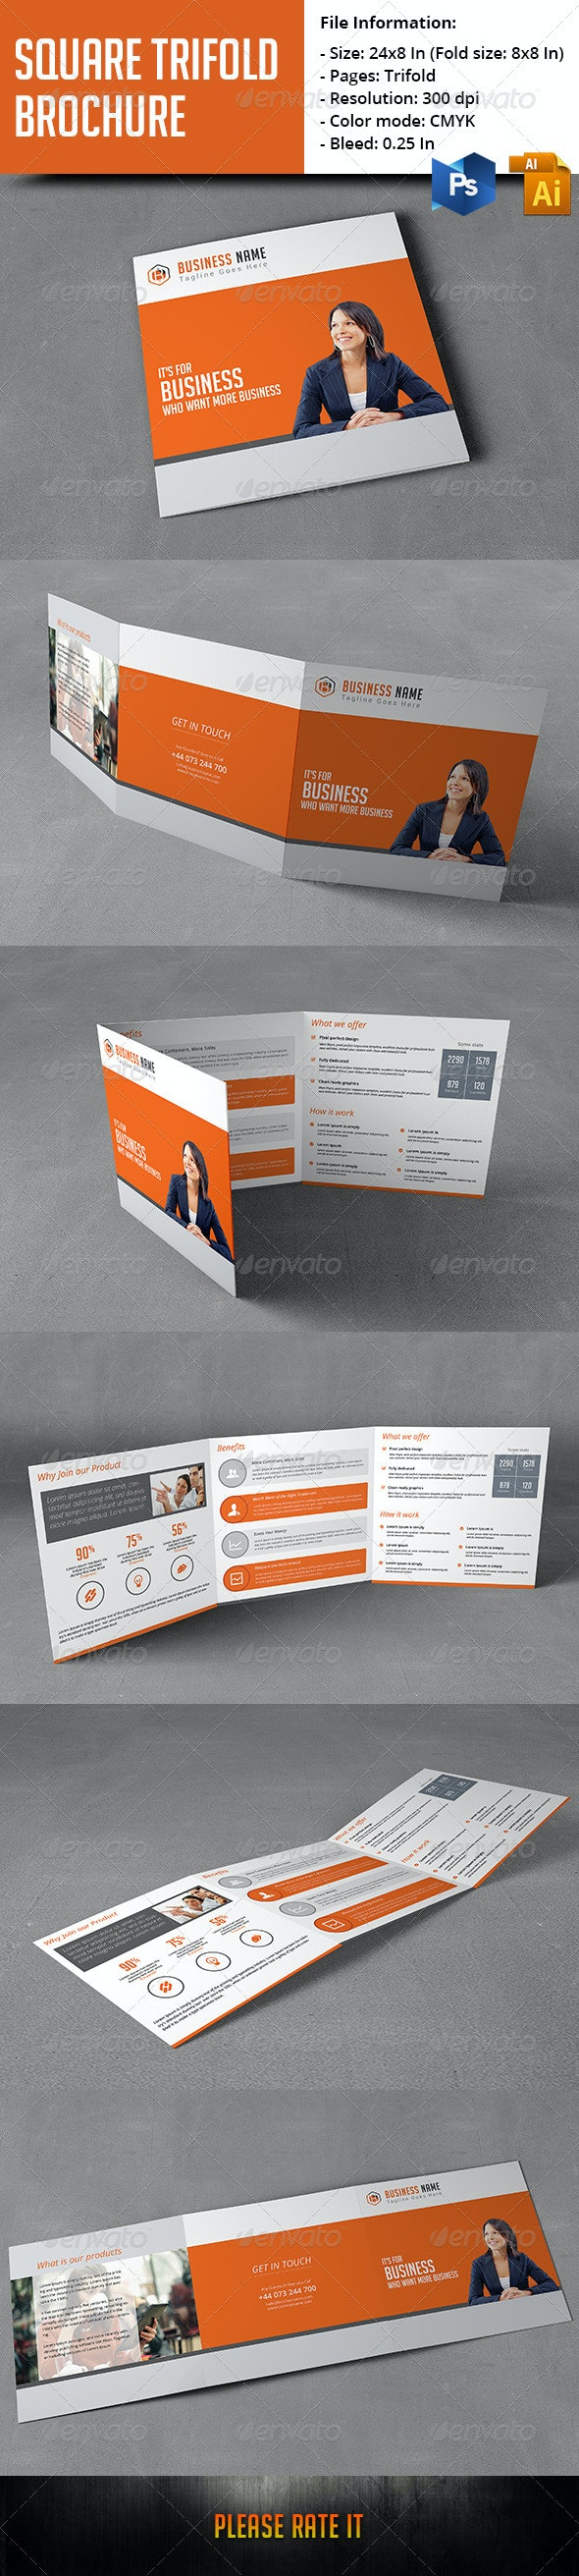 Square Trifold Brochure - Corporate Business Cards